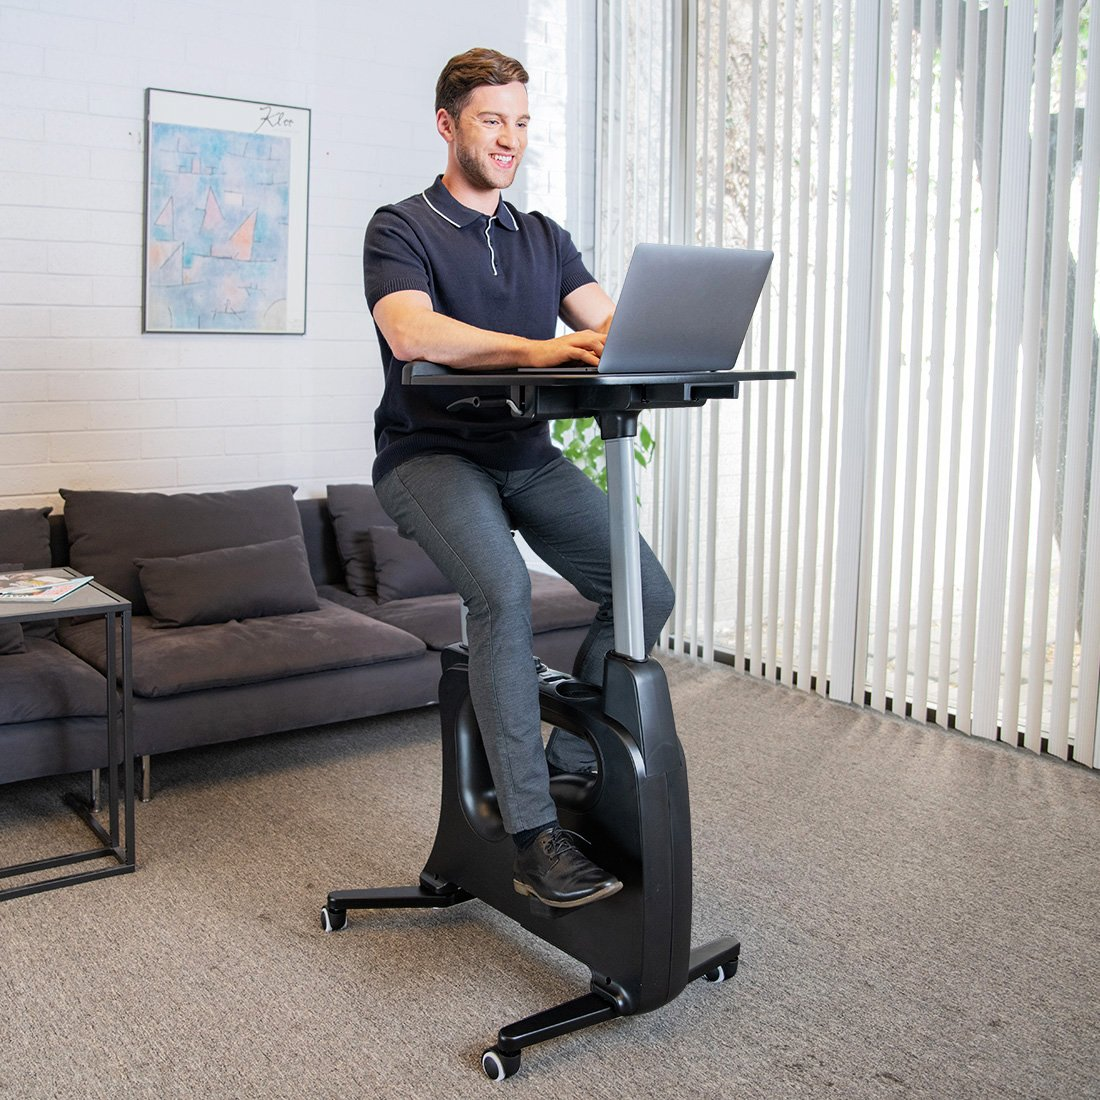 FLEXISPOT Standing Desk Bike Black Friday Deal 2020